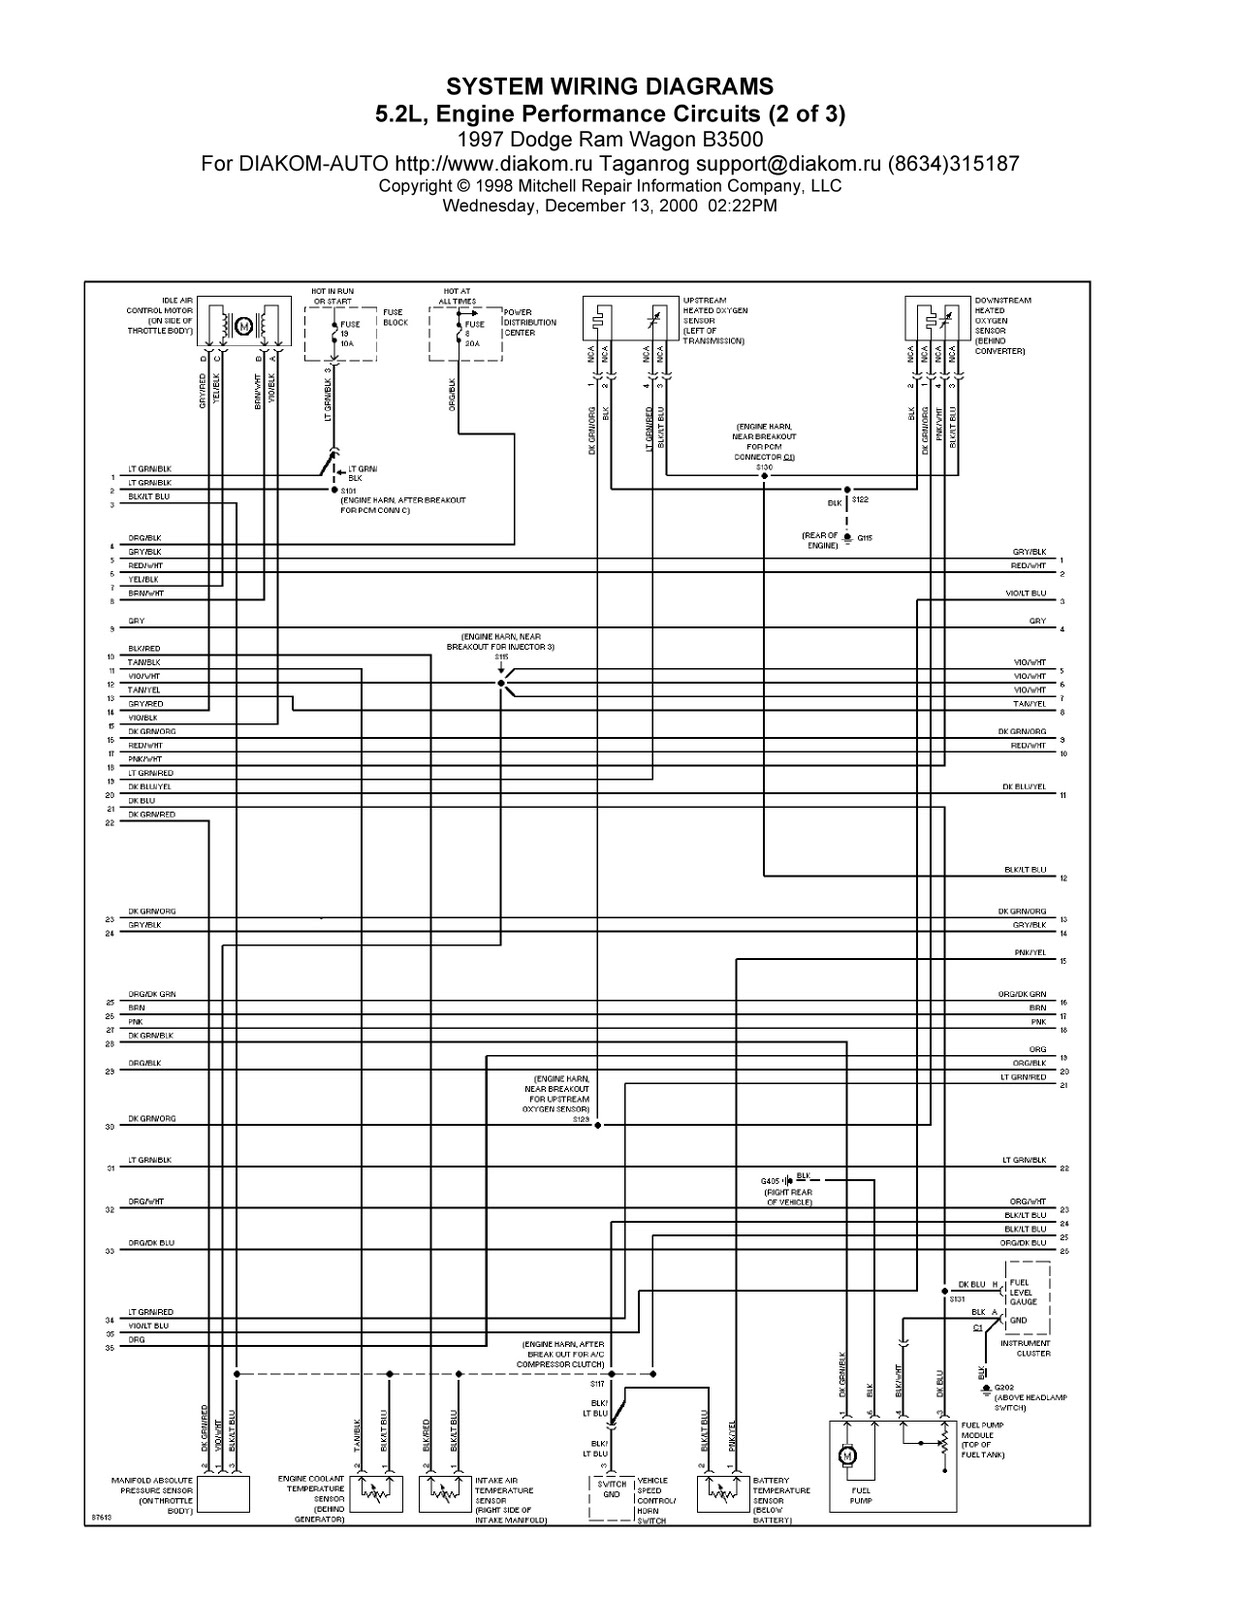 1997 Dodge Ram Wagon B3500 System Wiring Diagram 5,2L ...